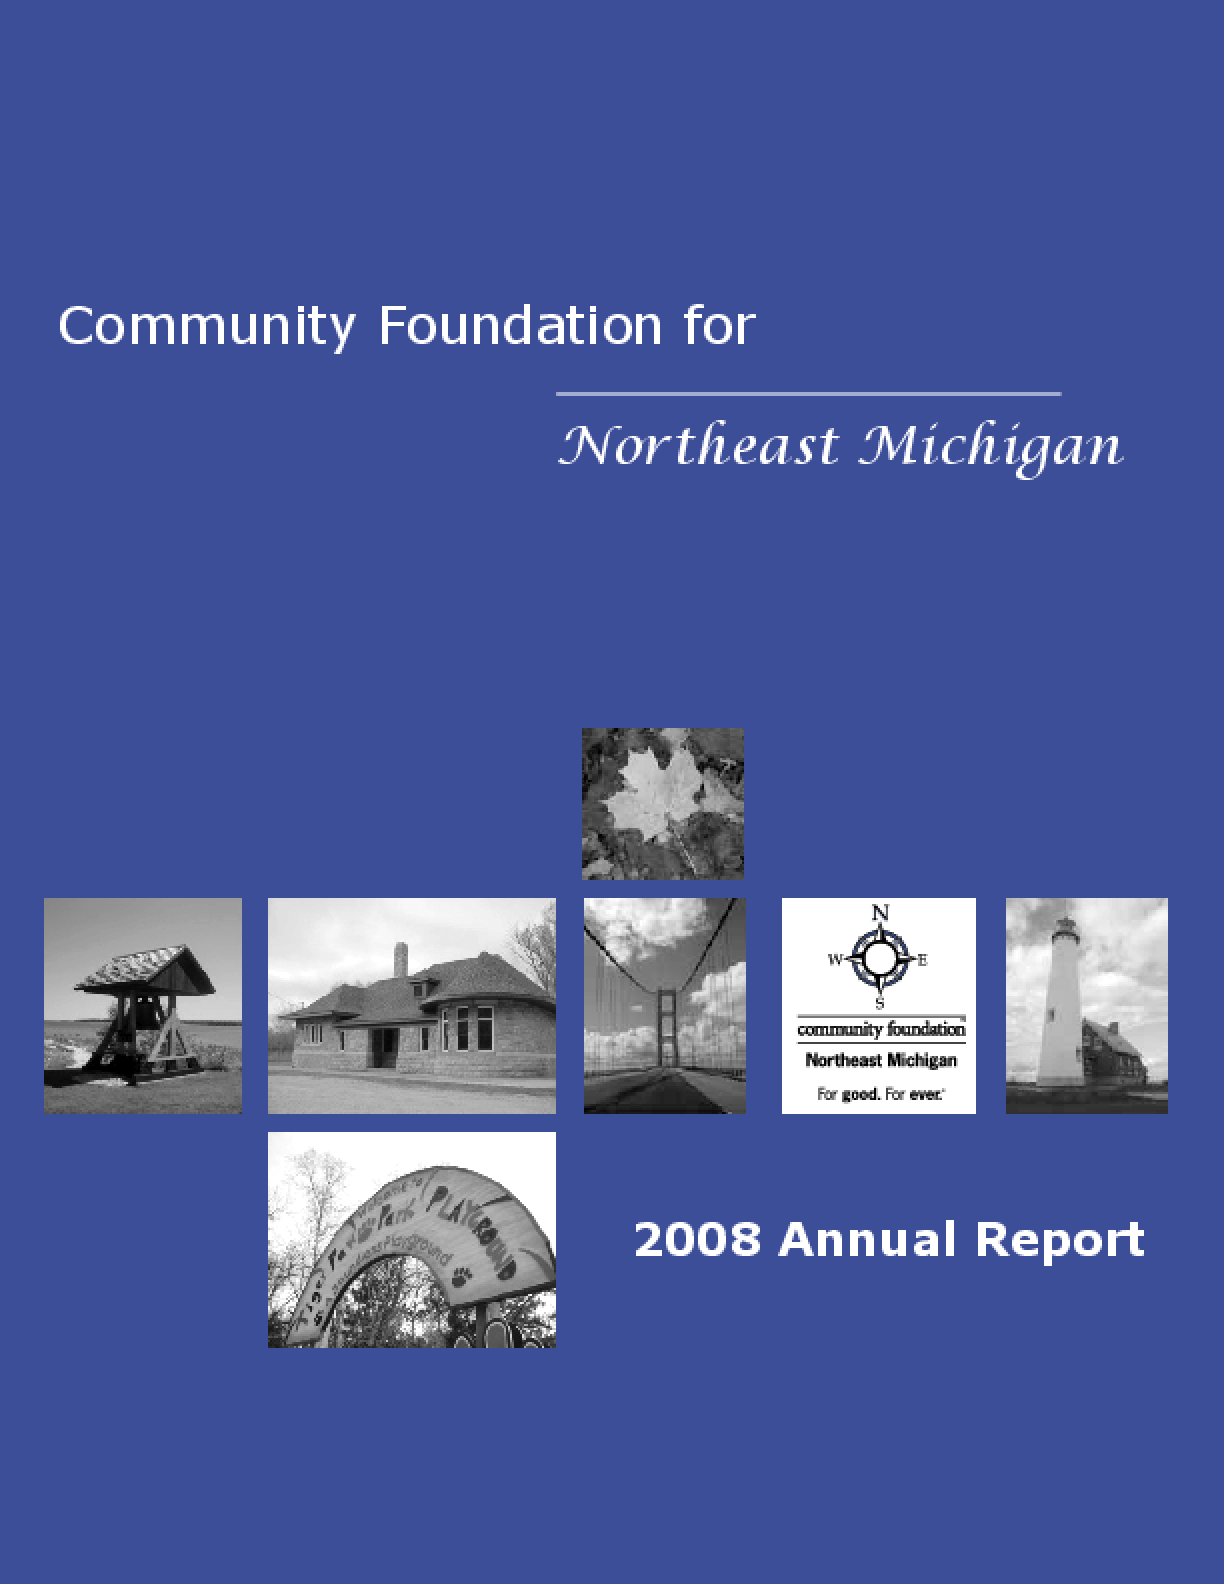 Community Foundation for Northeast Michigan - 2008 Annual Report